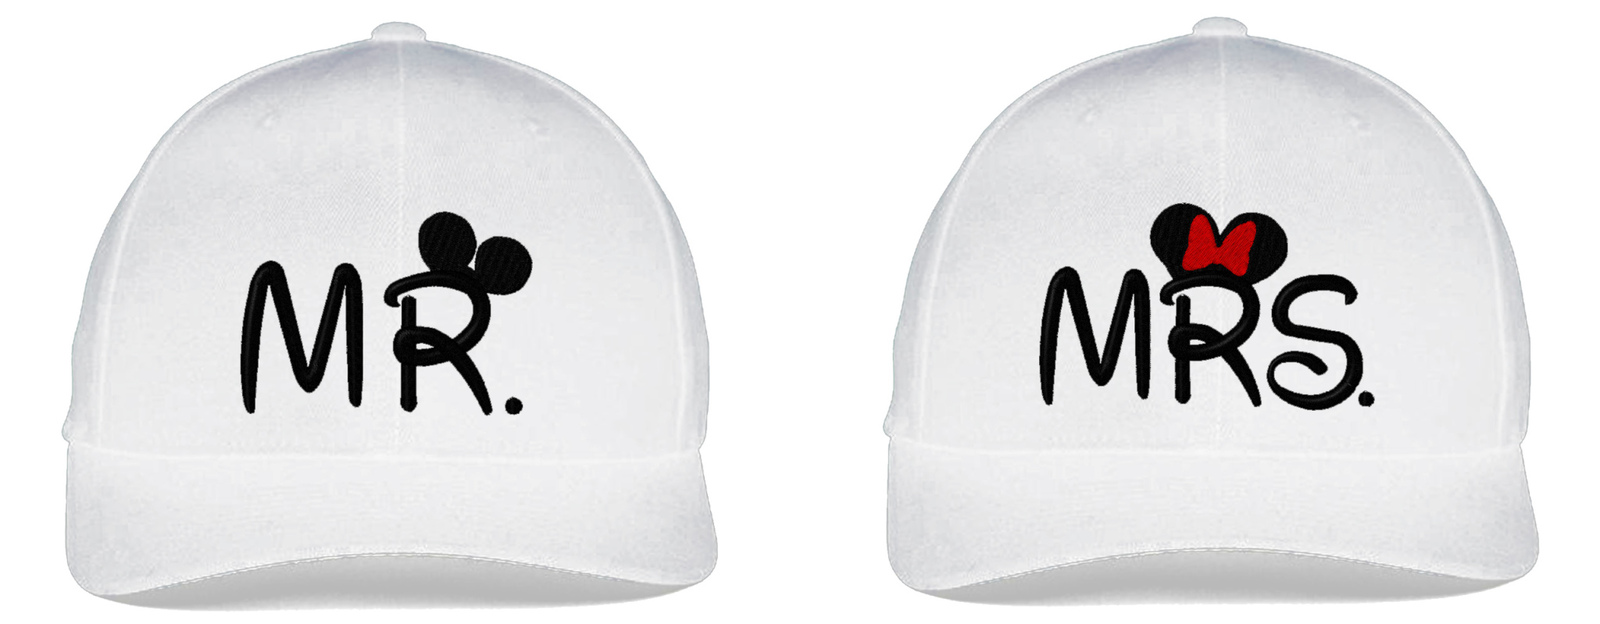 Mr & Mrs, Couple Matching, Embroidered Flexfit Hats